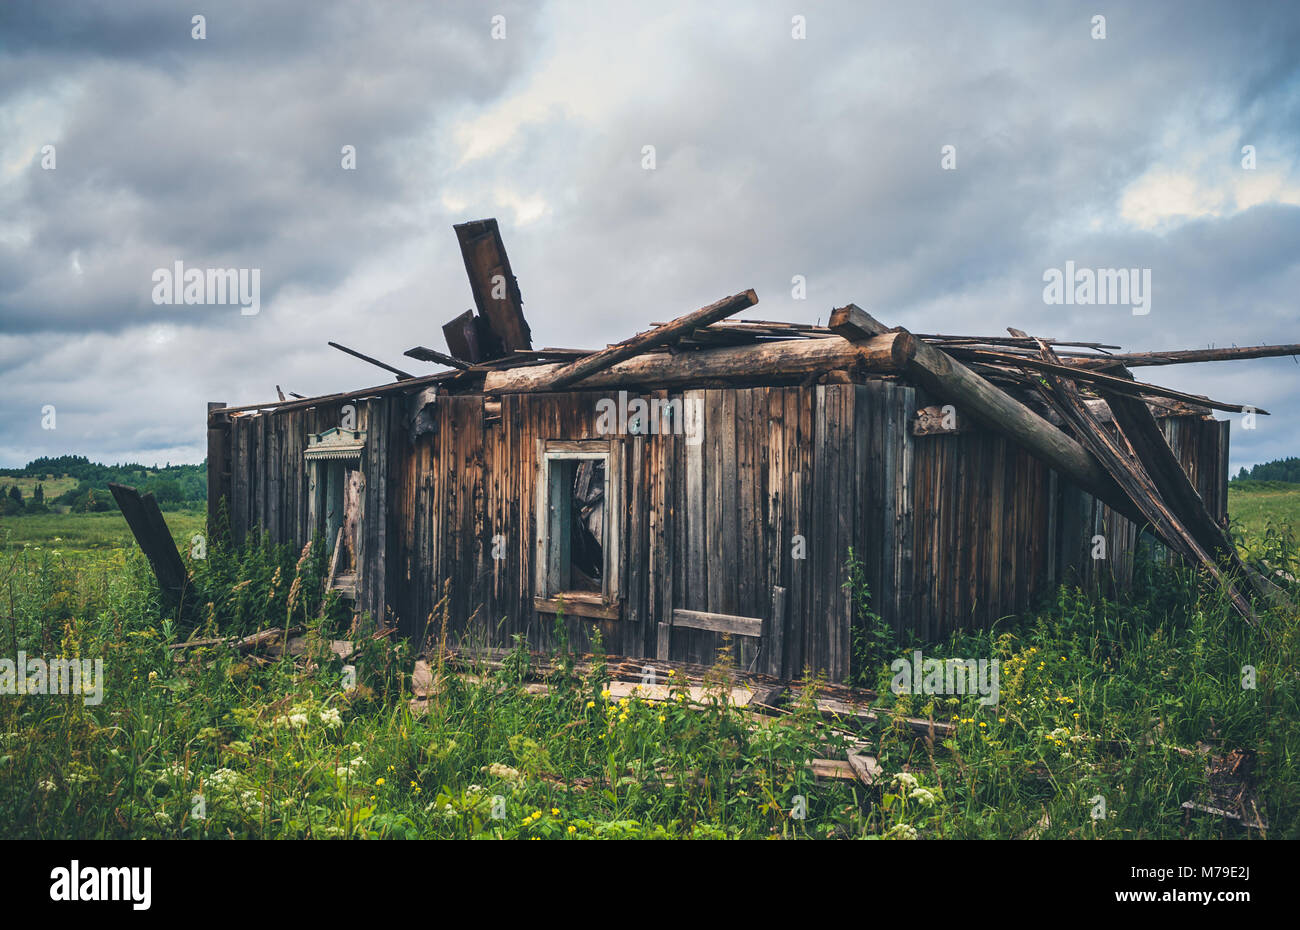 Old ruined wooden rural house. - Stock Image